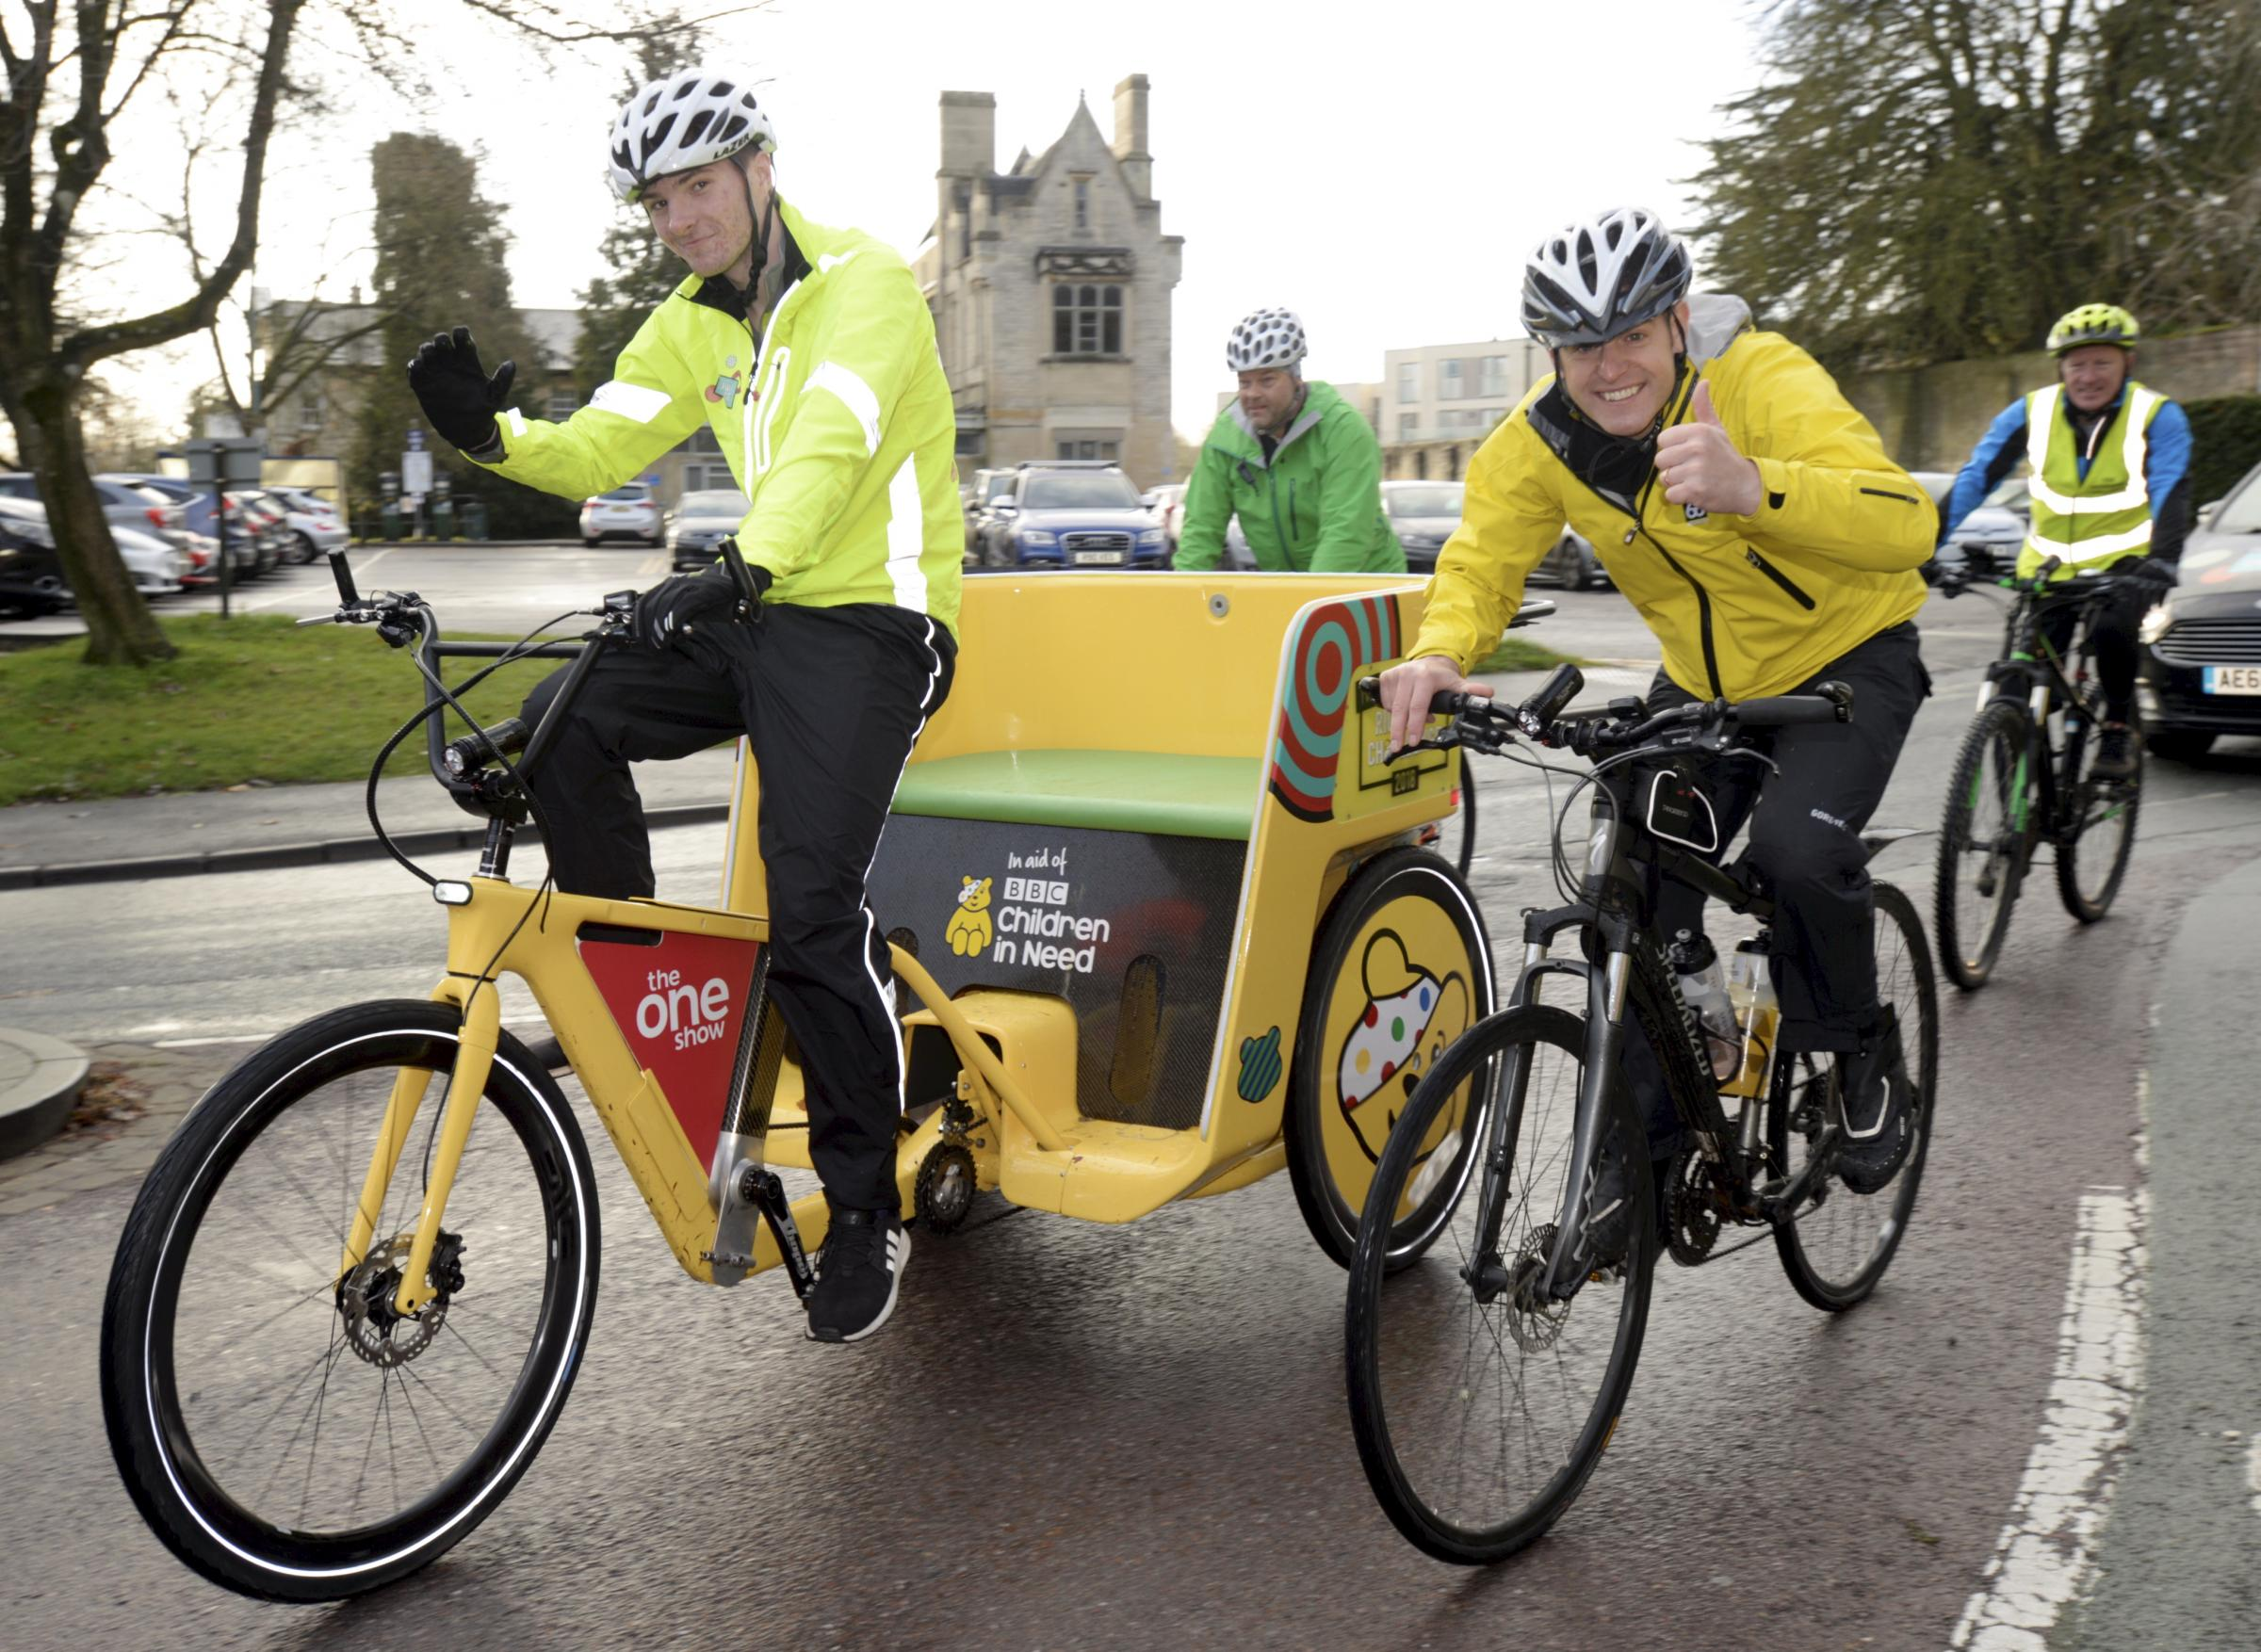 Photos from Team Rickshaw's pit stop in Cirencester this morning